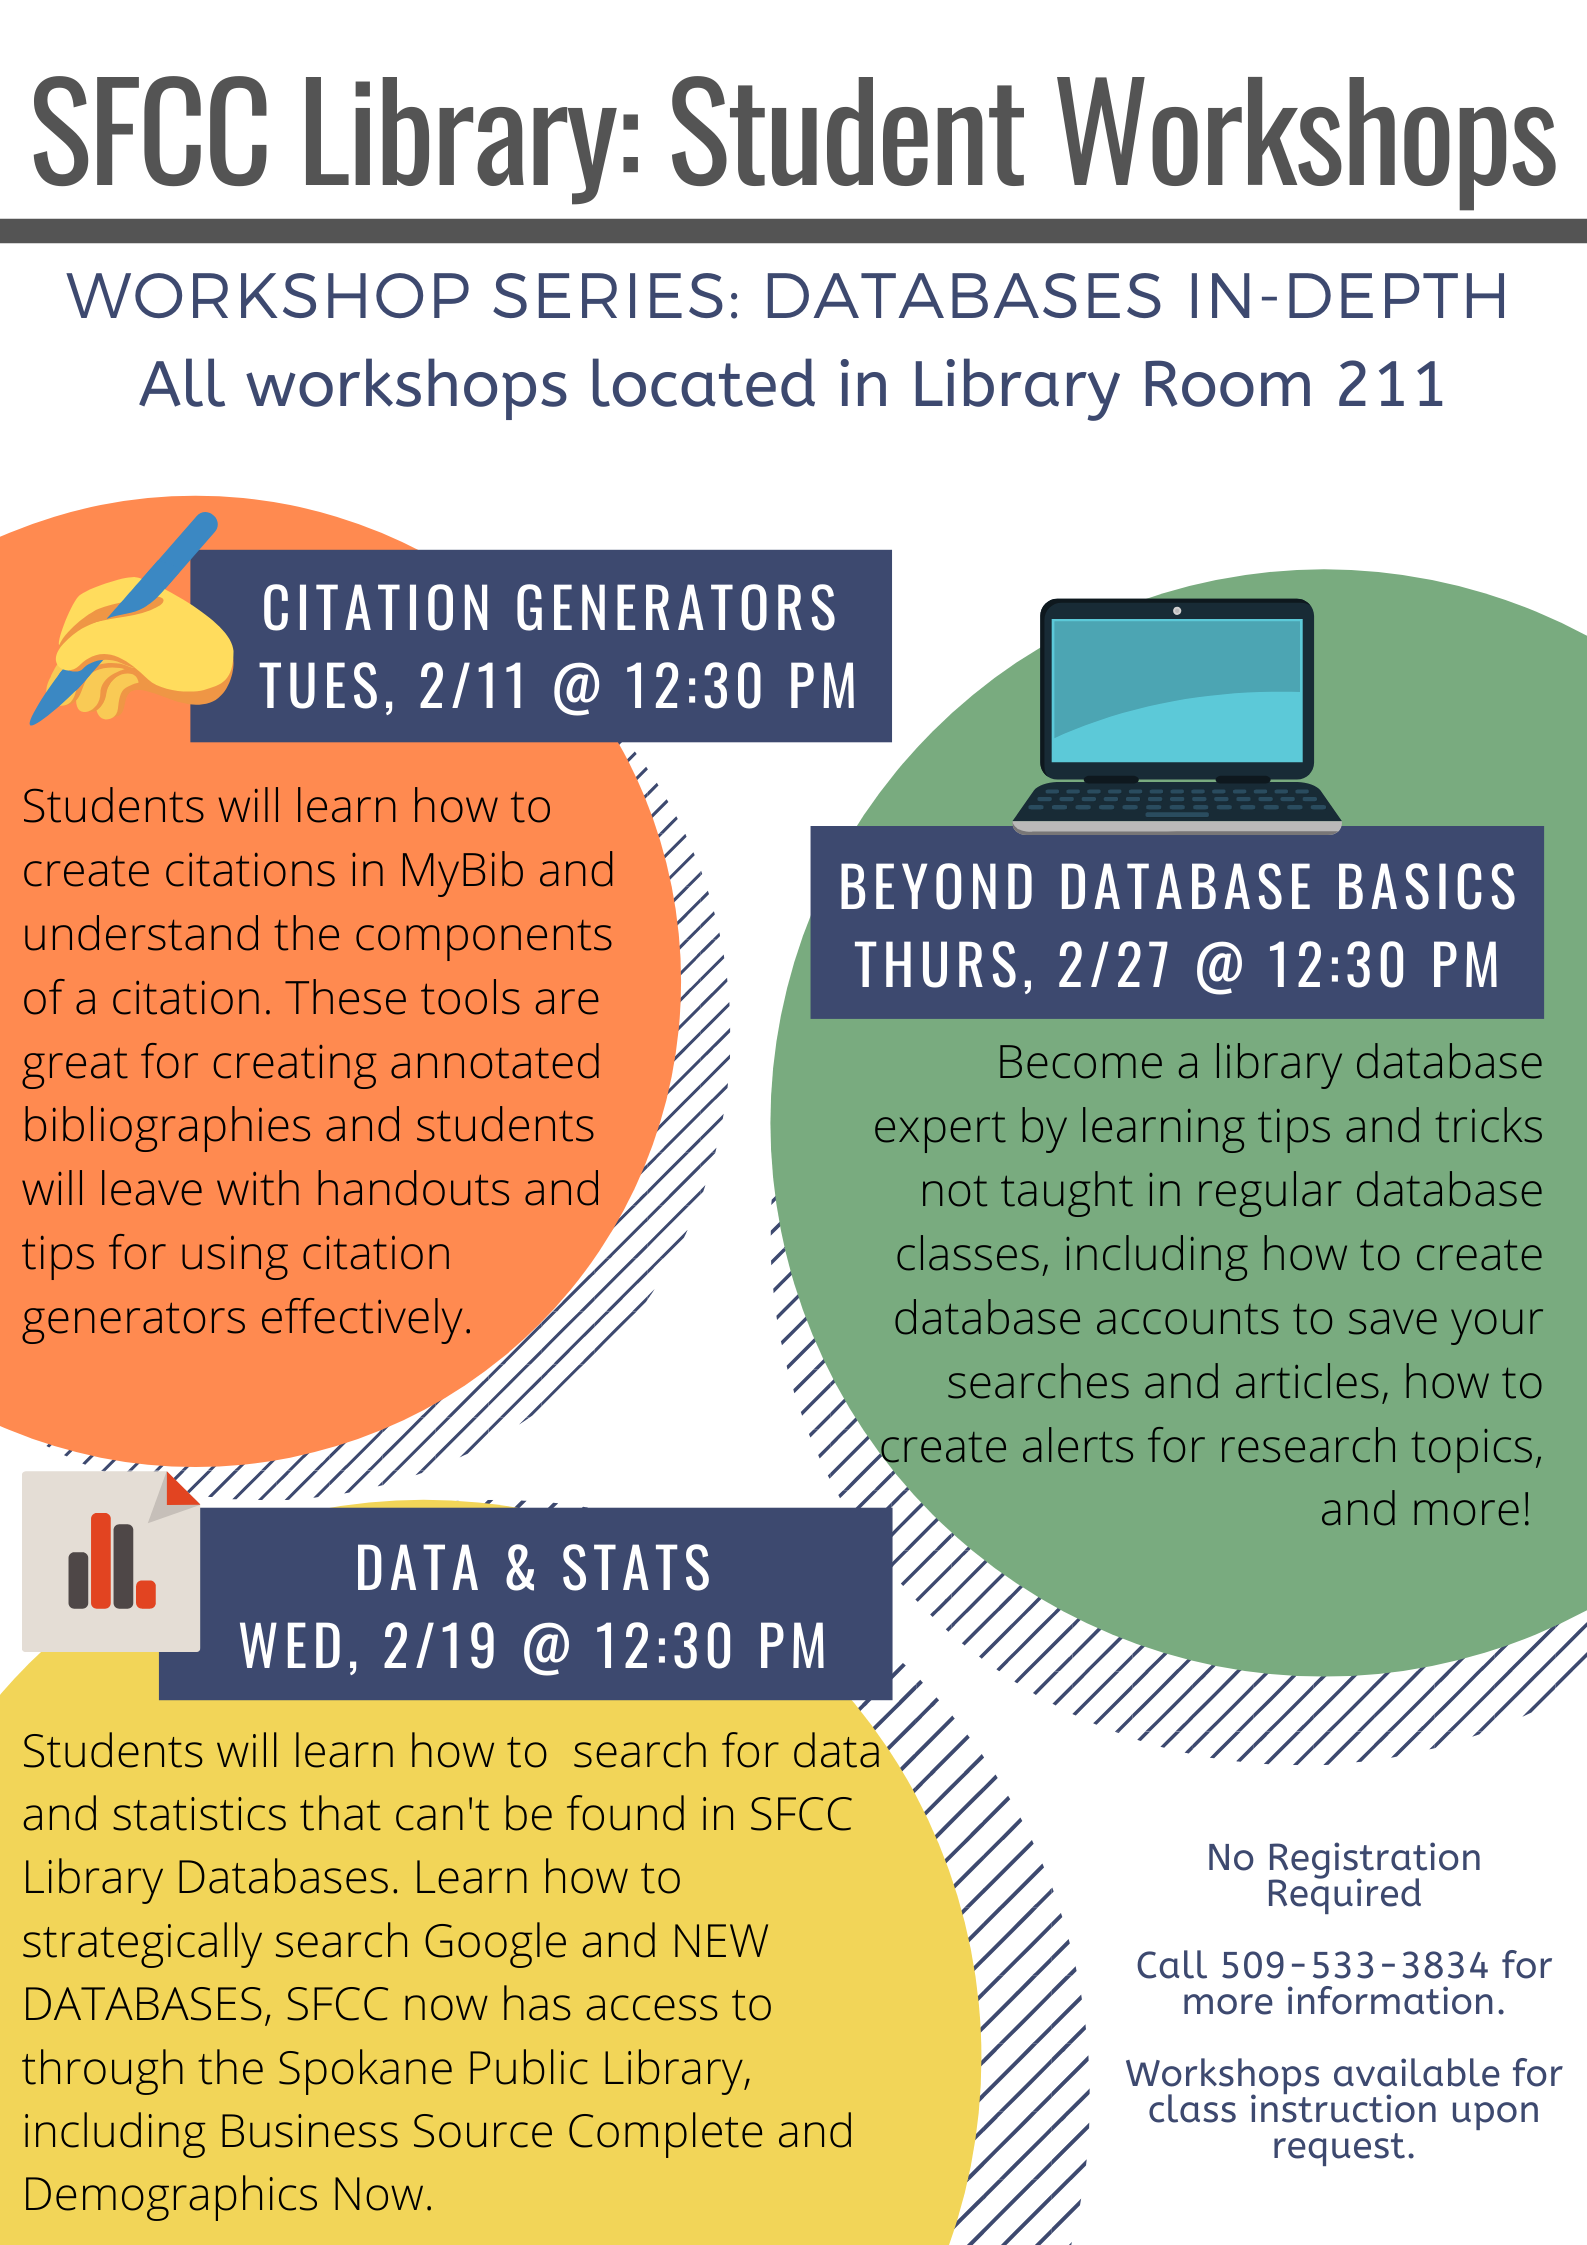 See Transcript Below for this Image: SFCC Library: Winter 2020 Student Workshops